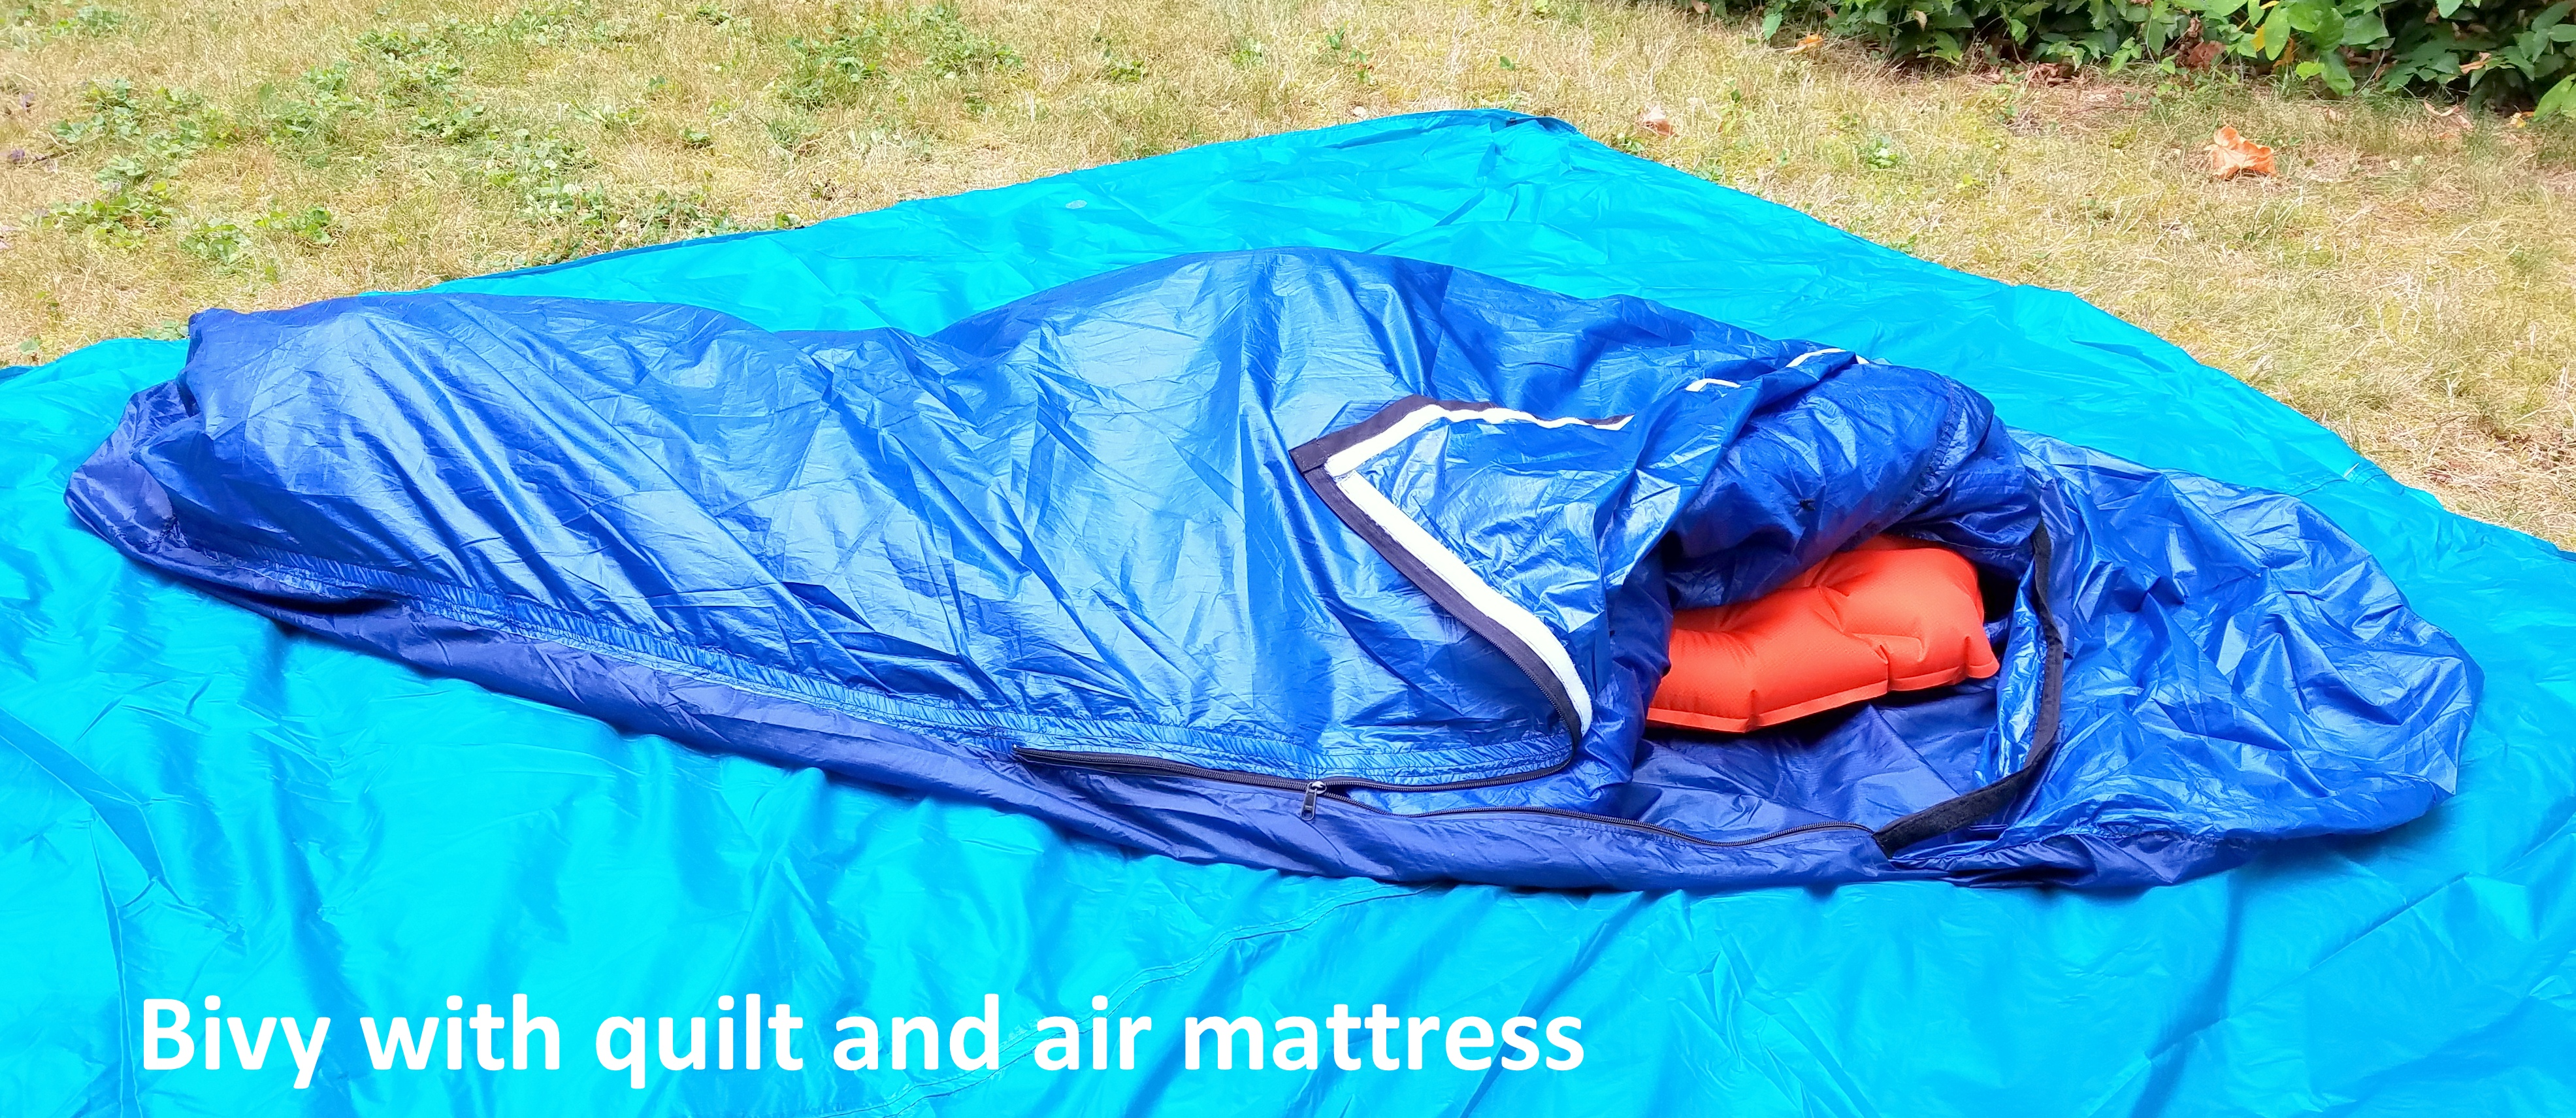 A Diy Ultralight Multipurpose Bivy Sack Henry In The Woods